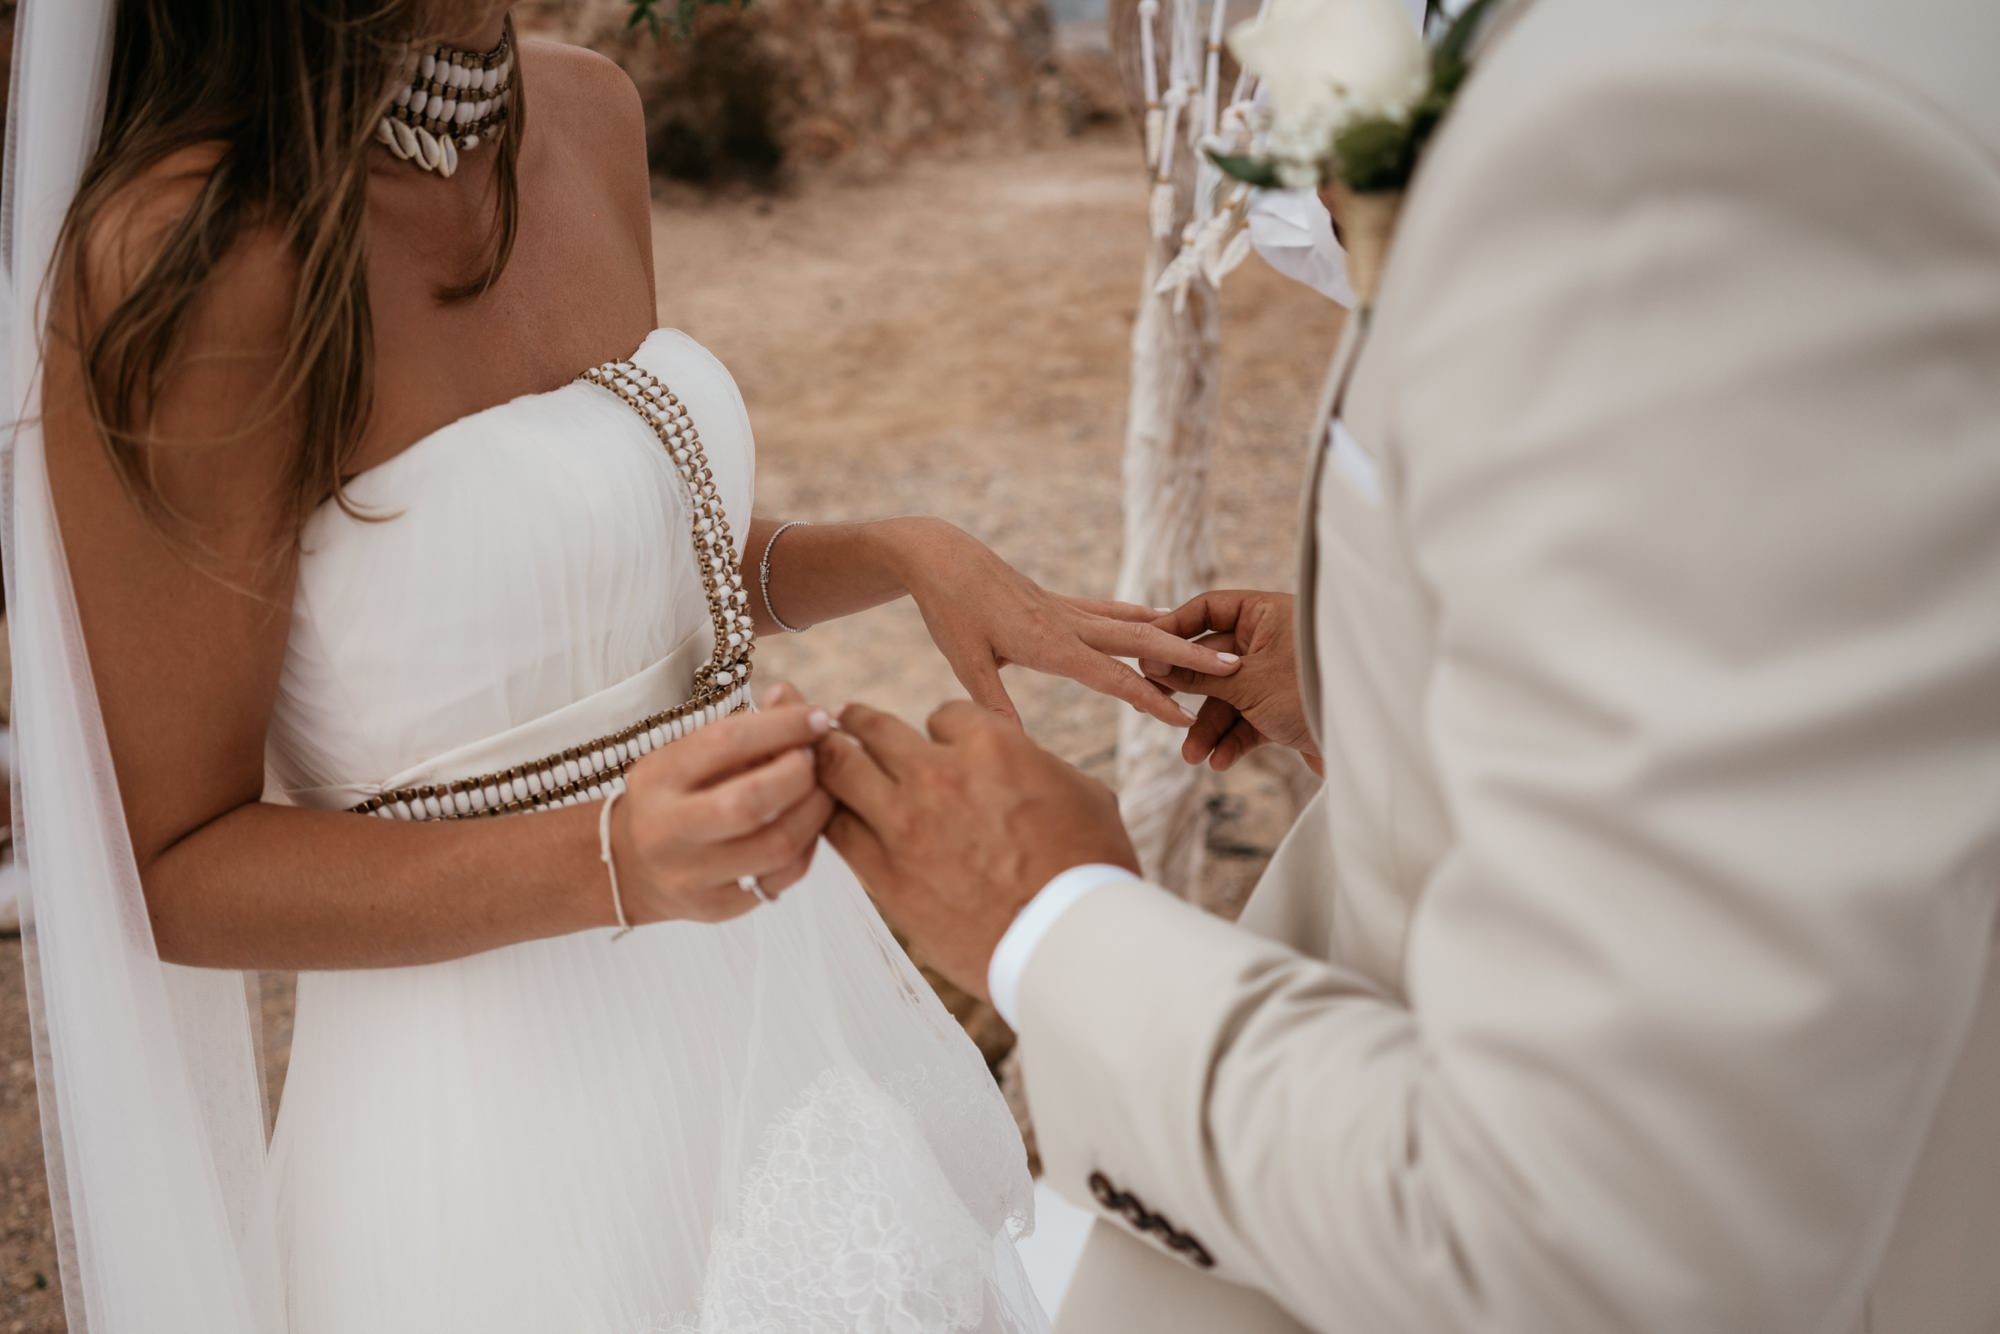 natural wedding photo destination la escollera ibiza 0070 1